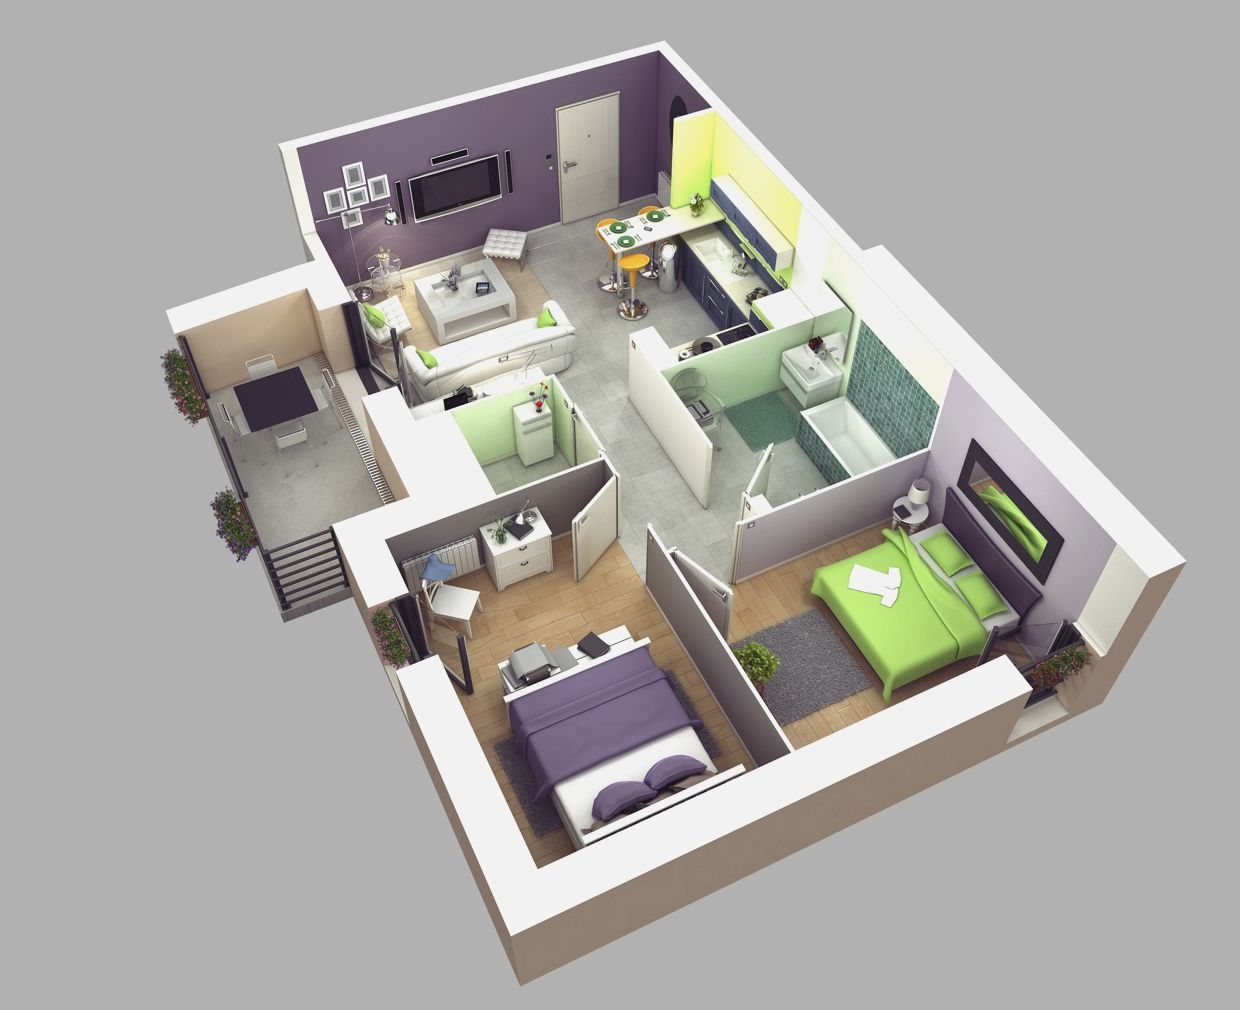 low budget modern 3 bedroom house design in 2020 | Three ...